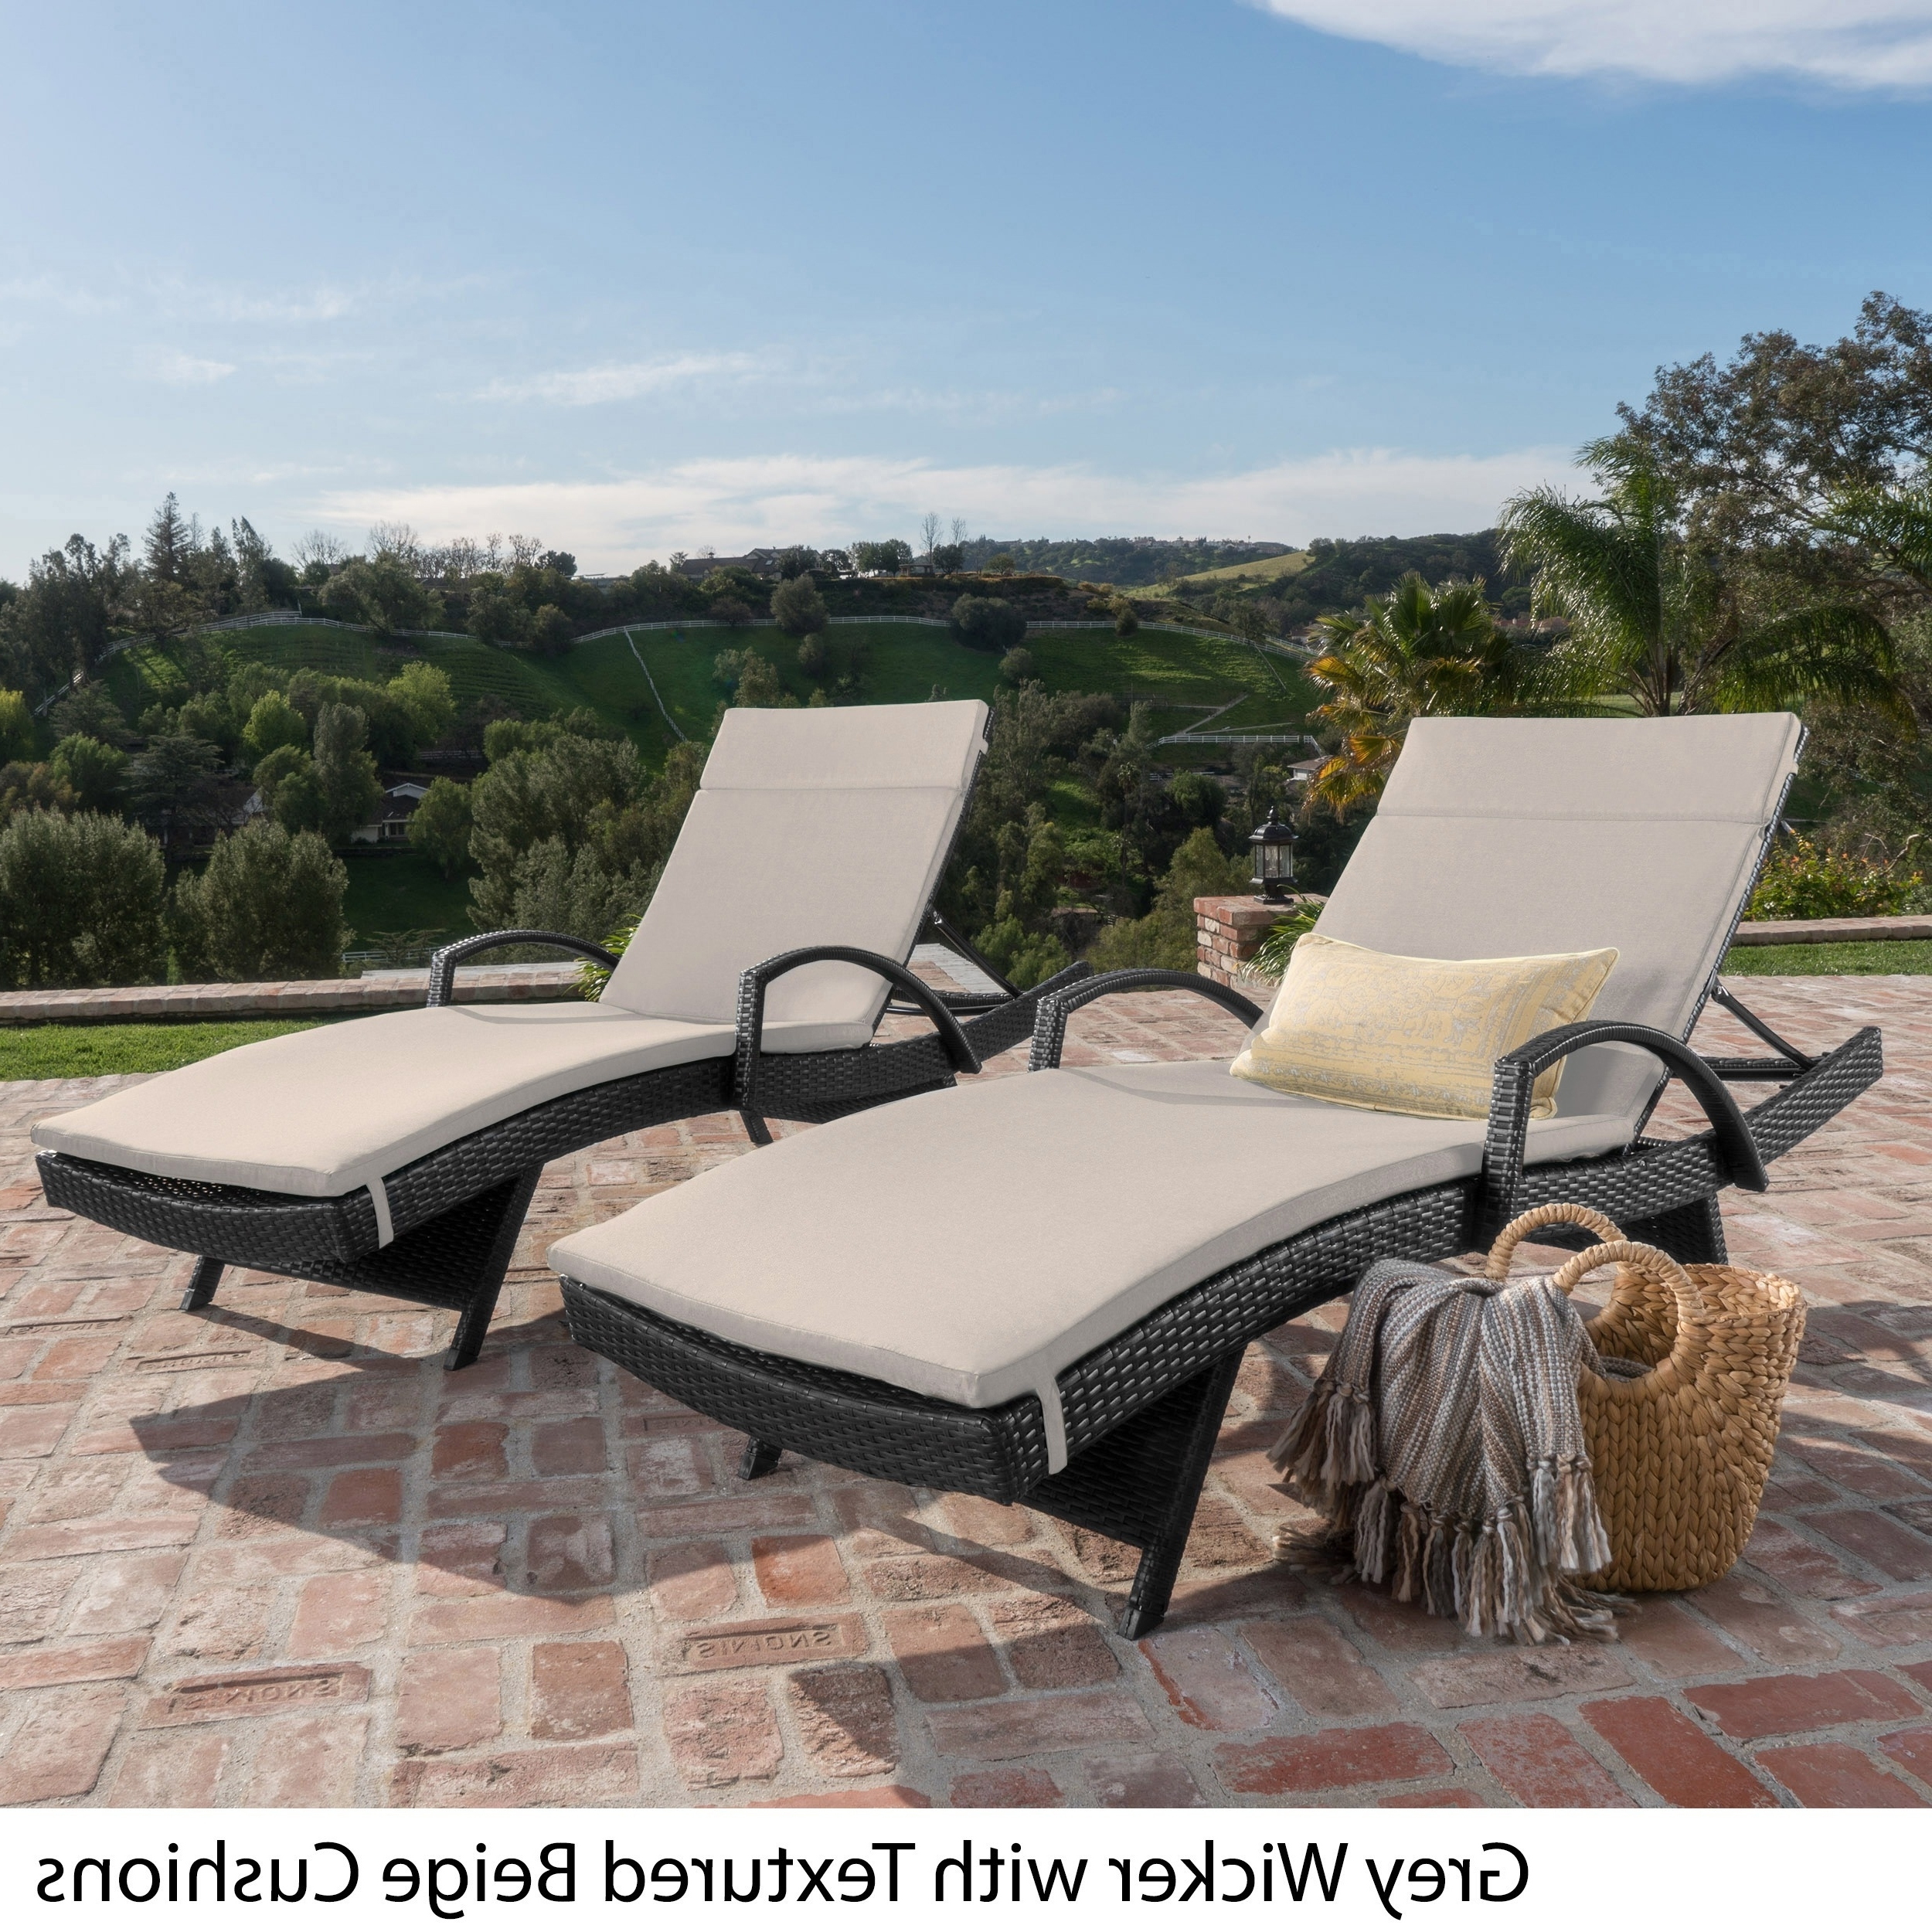 Outdoor : Lowes Chaise Lounge Indoor Outdoor Chaise Lounge Chairs For Recent Hotel Pool Chaise Lounge Chairs (View 7 of 15)